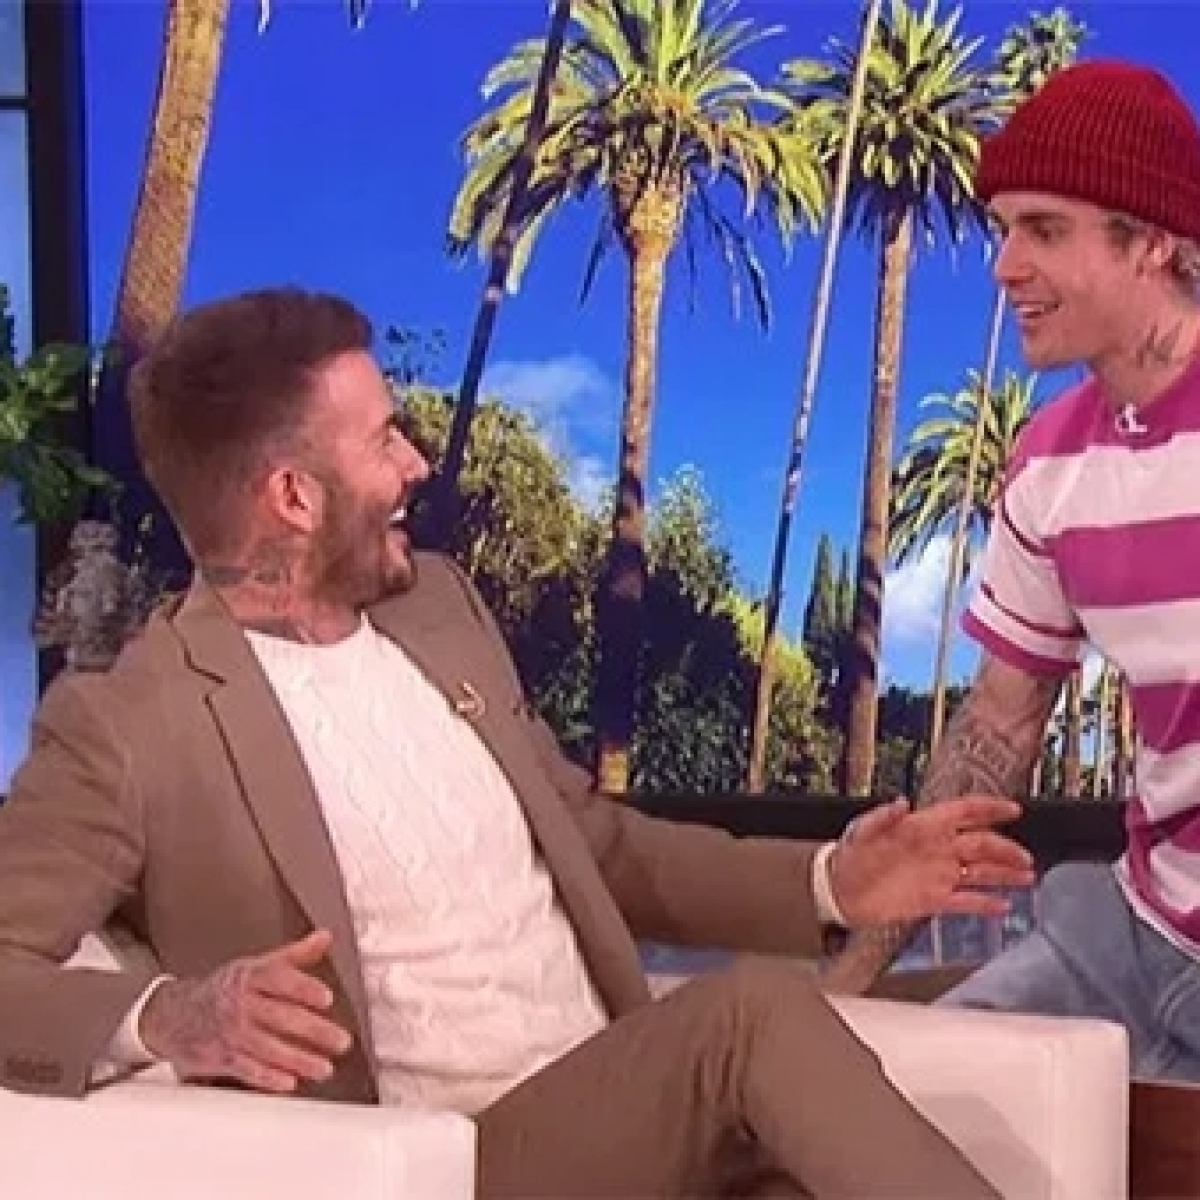 Watch video: Justin Bieber's attempt to scare David Beckham fails miserably